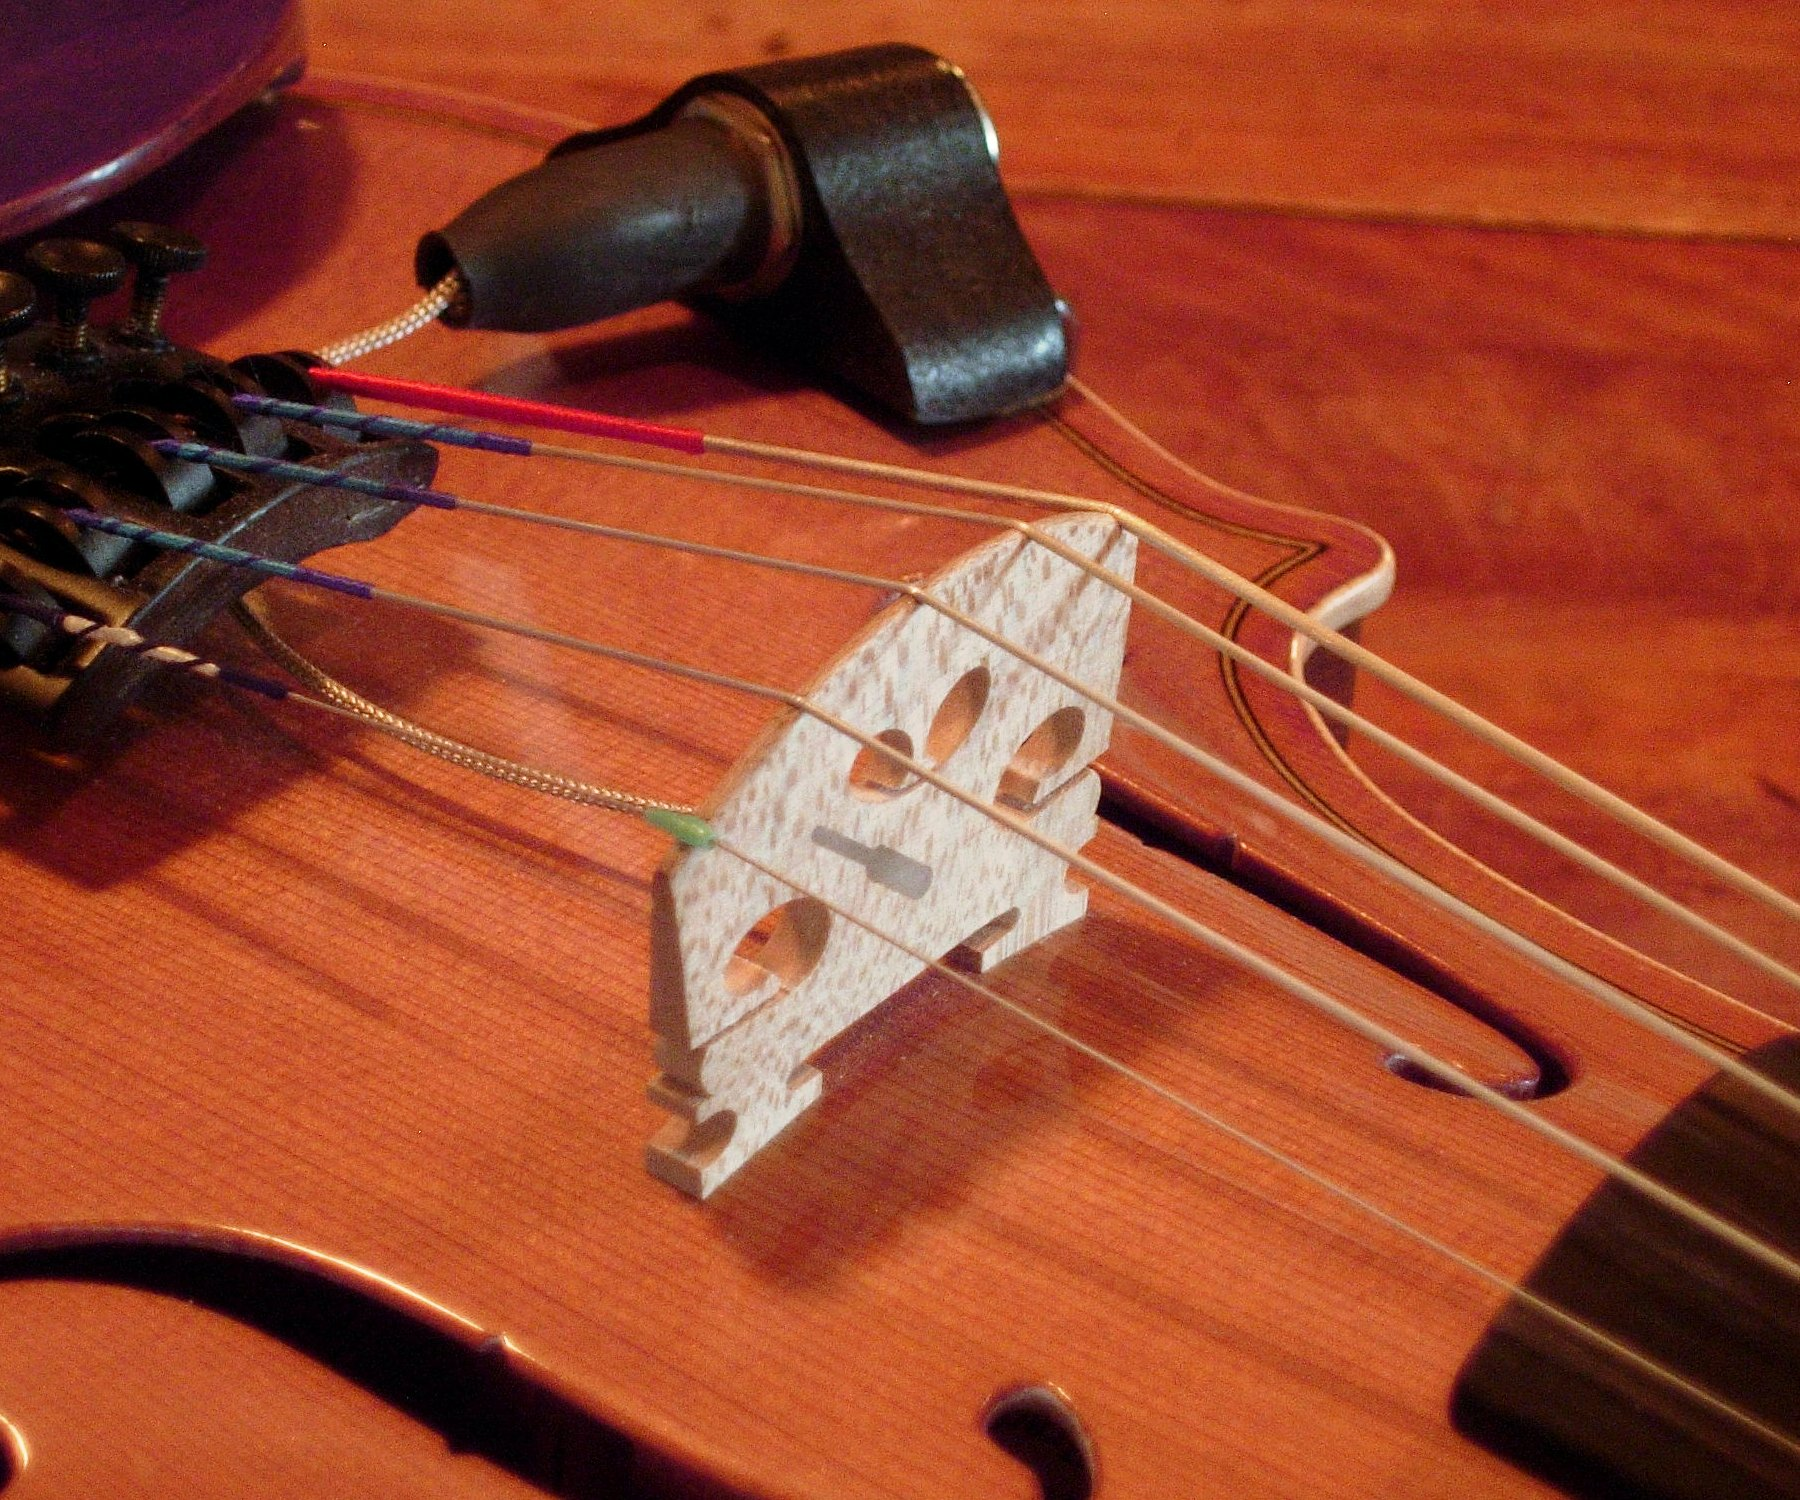 ViolinBridges.co.uk | Welcome to Violinbridges.co.uk